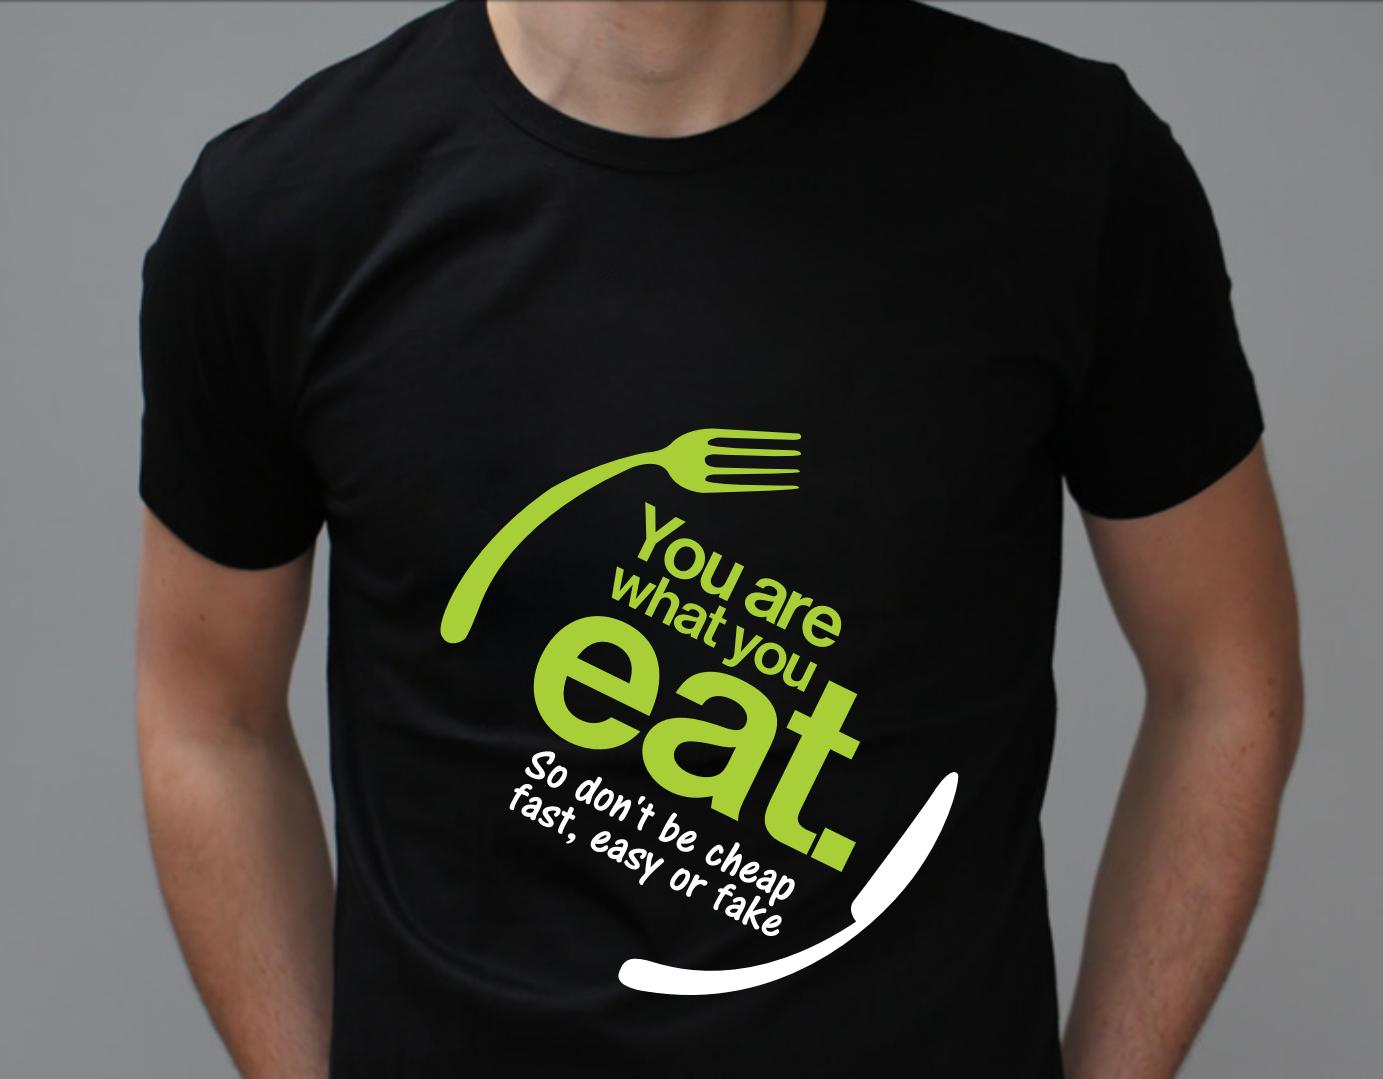 Custom t shirt design by astralgirl on envato studio for Custom t shirts design your own